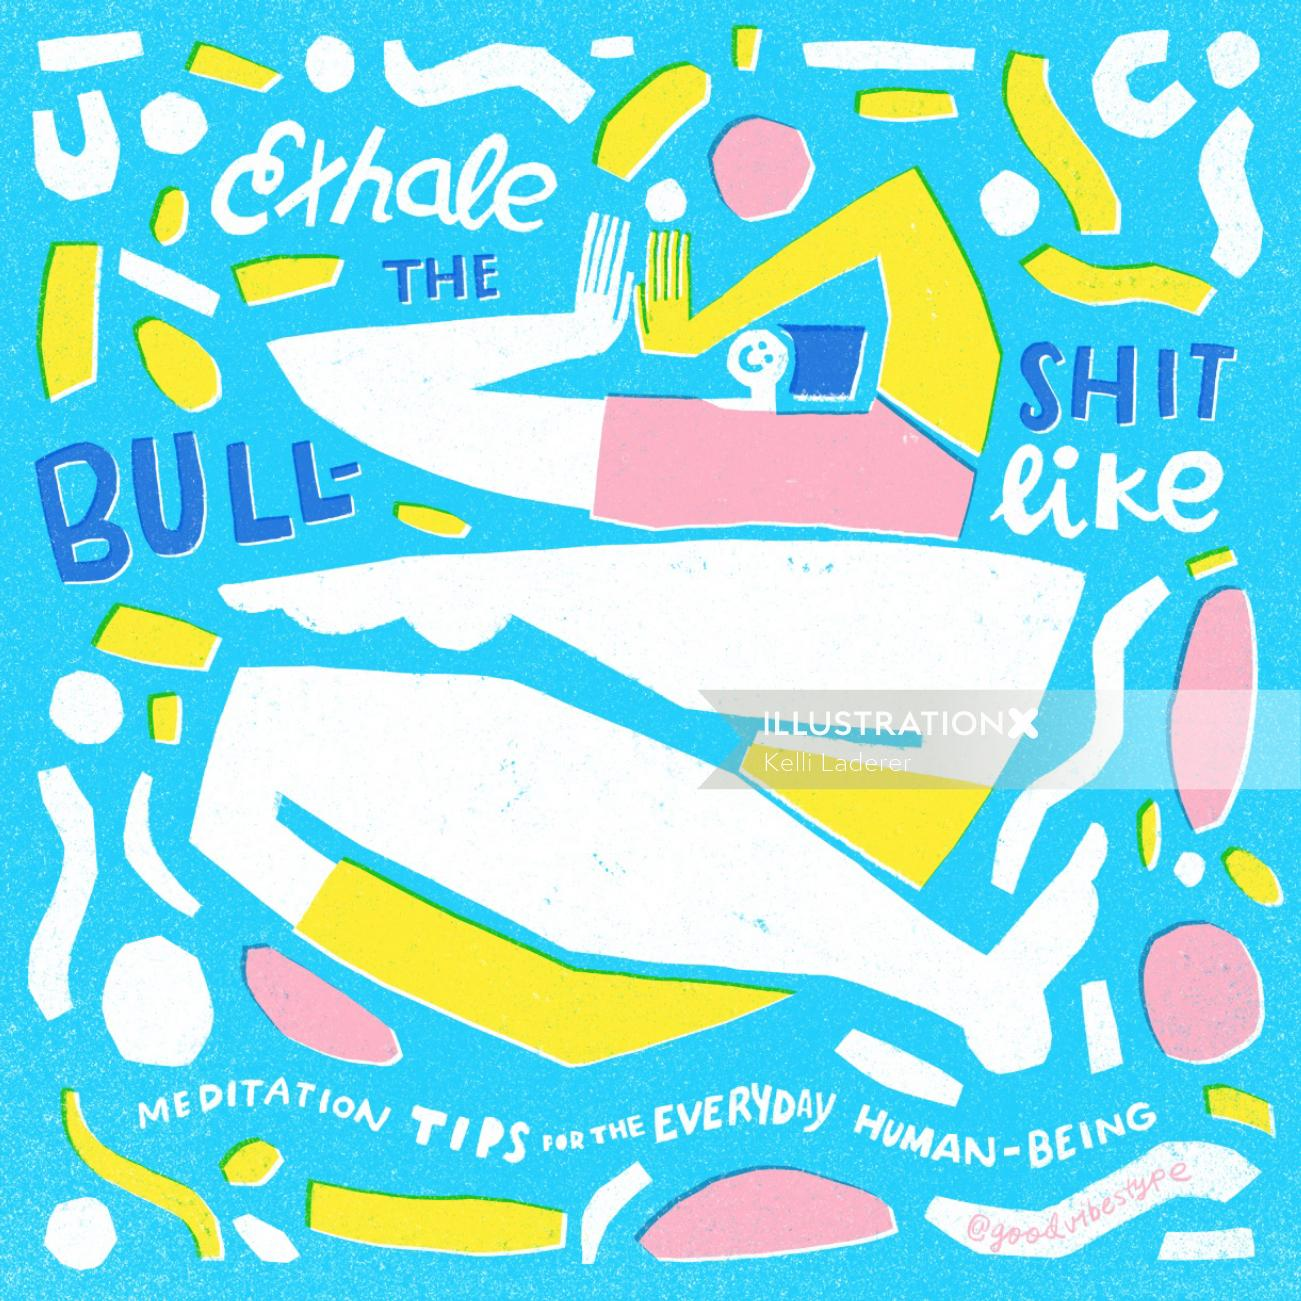 Exhale the bullshit lettering artwork